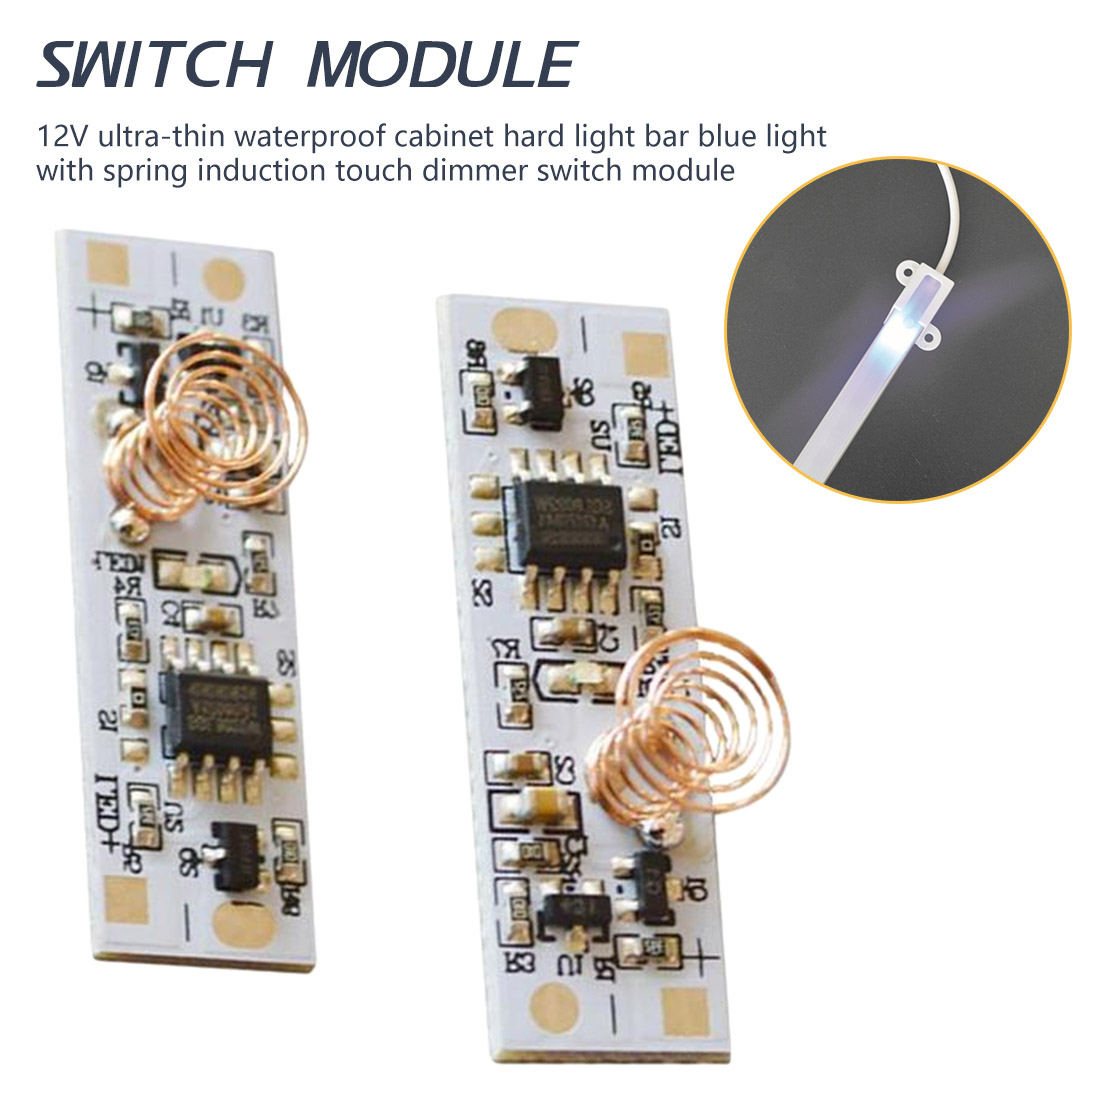 LED Dimmer Control Switch Capacitive Touch Sensor Switch Coil Spring Switch DC 3-24 V 36W 3A For Smart Home LED Light Strip